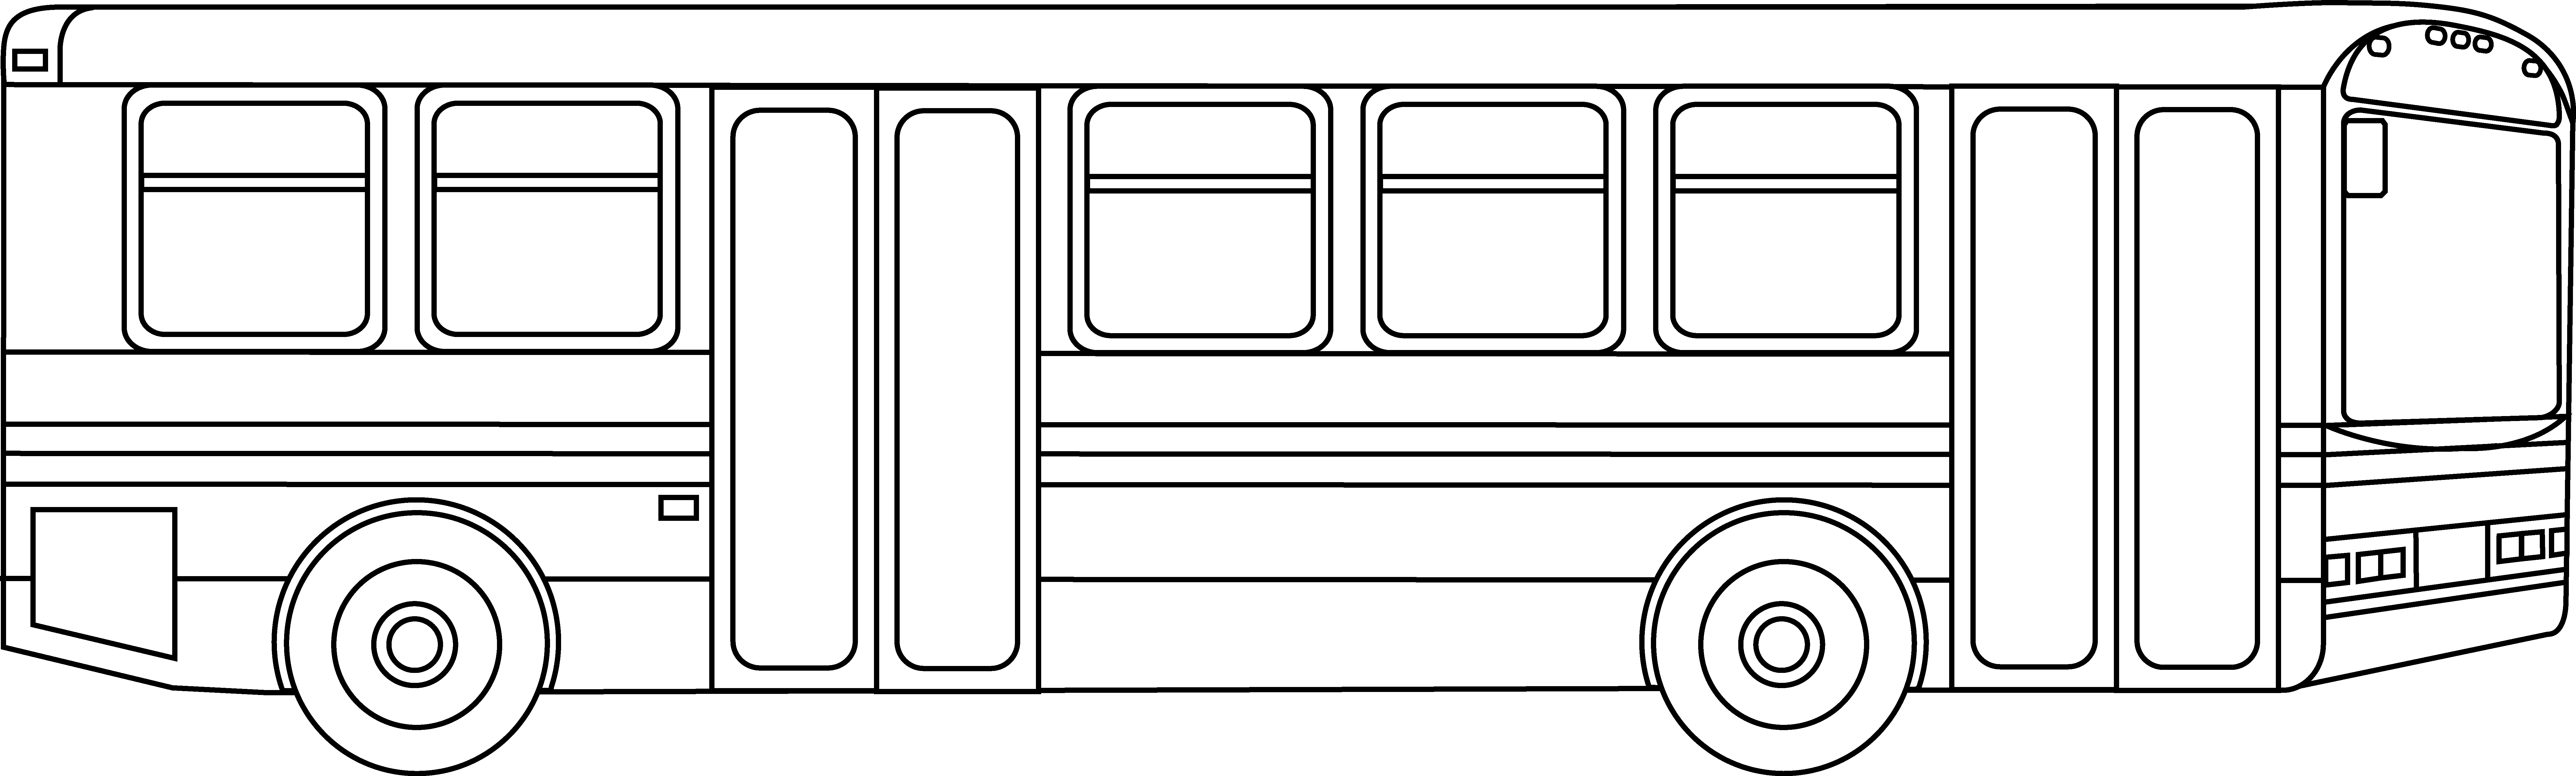 Transport drawing outline. Free bus picture download